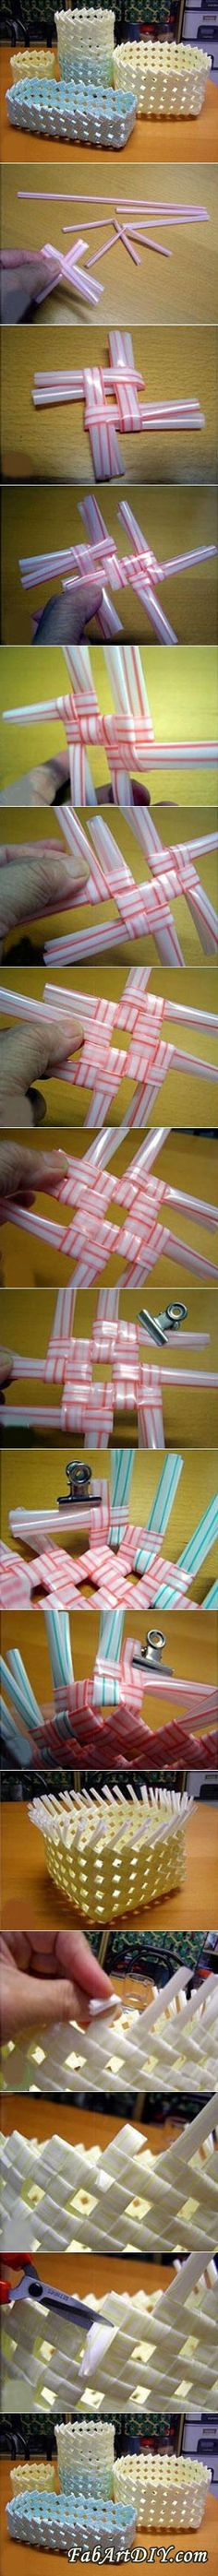 SUCH a Cute Craft! Make these highly durable drinking straw baskets. TUTORIAL